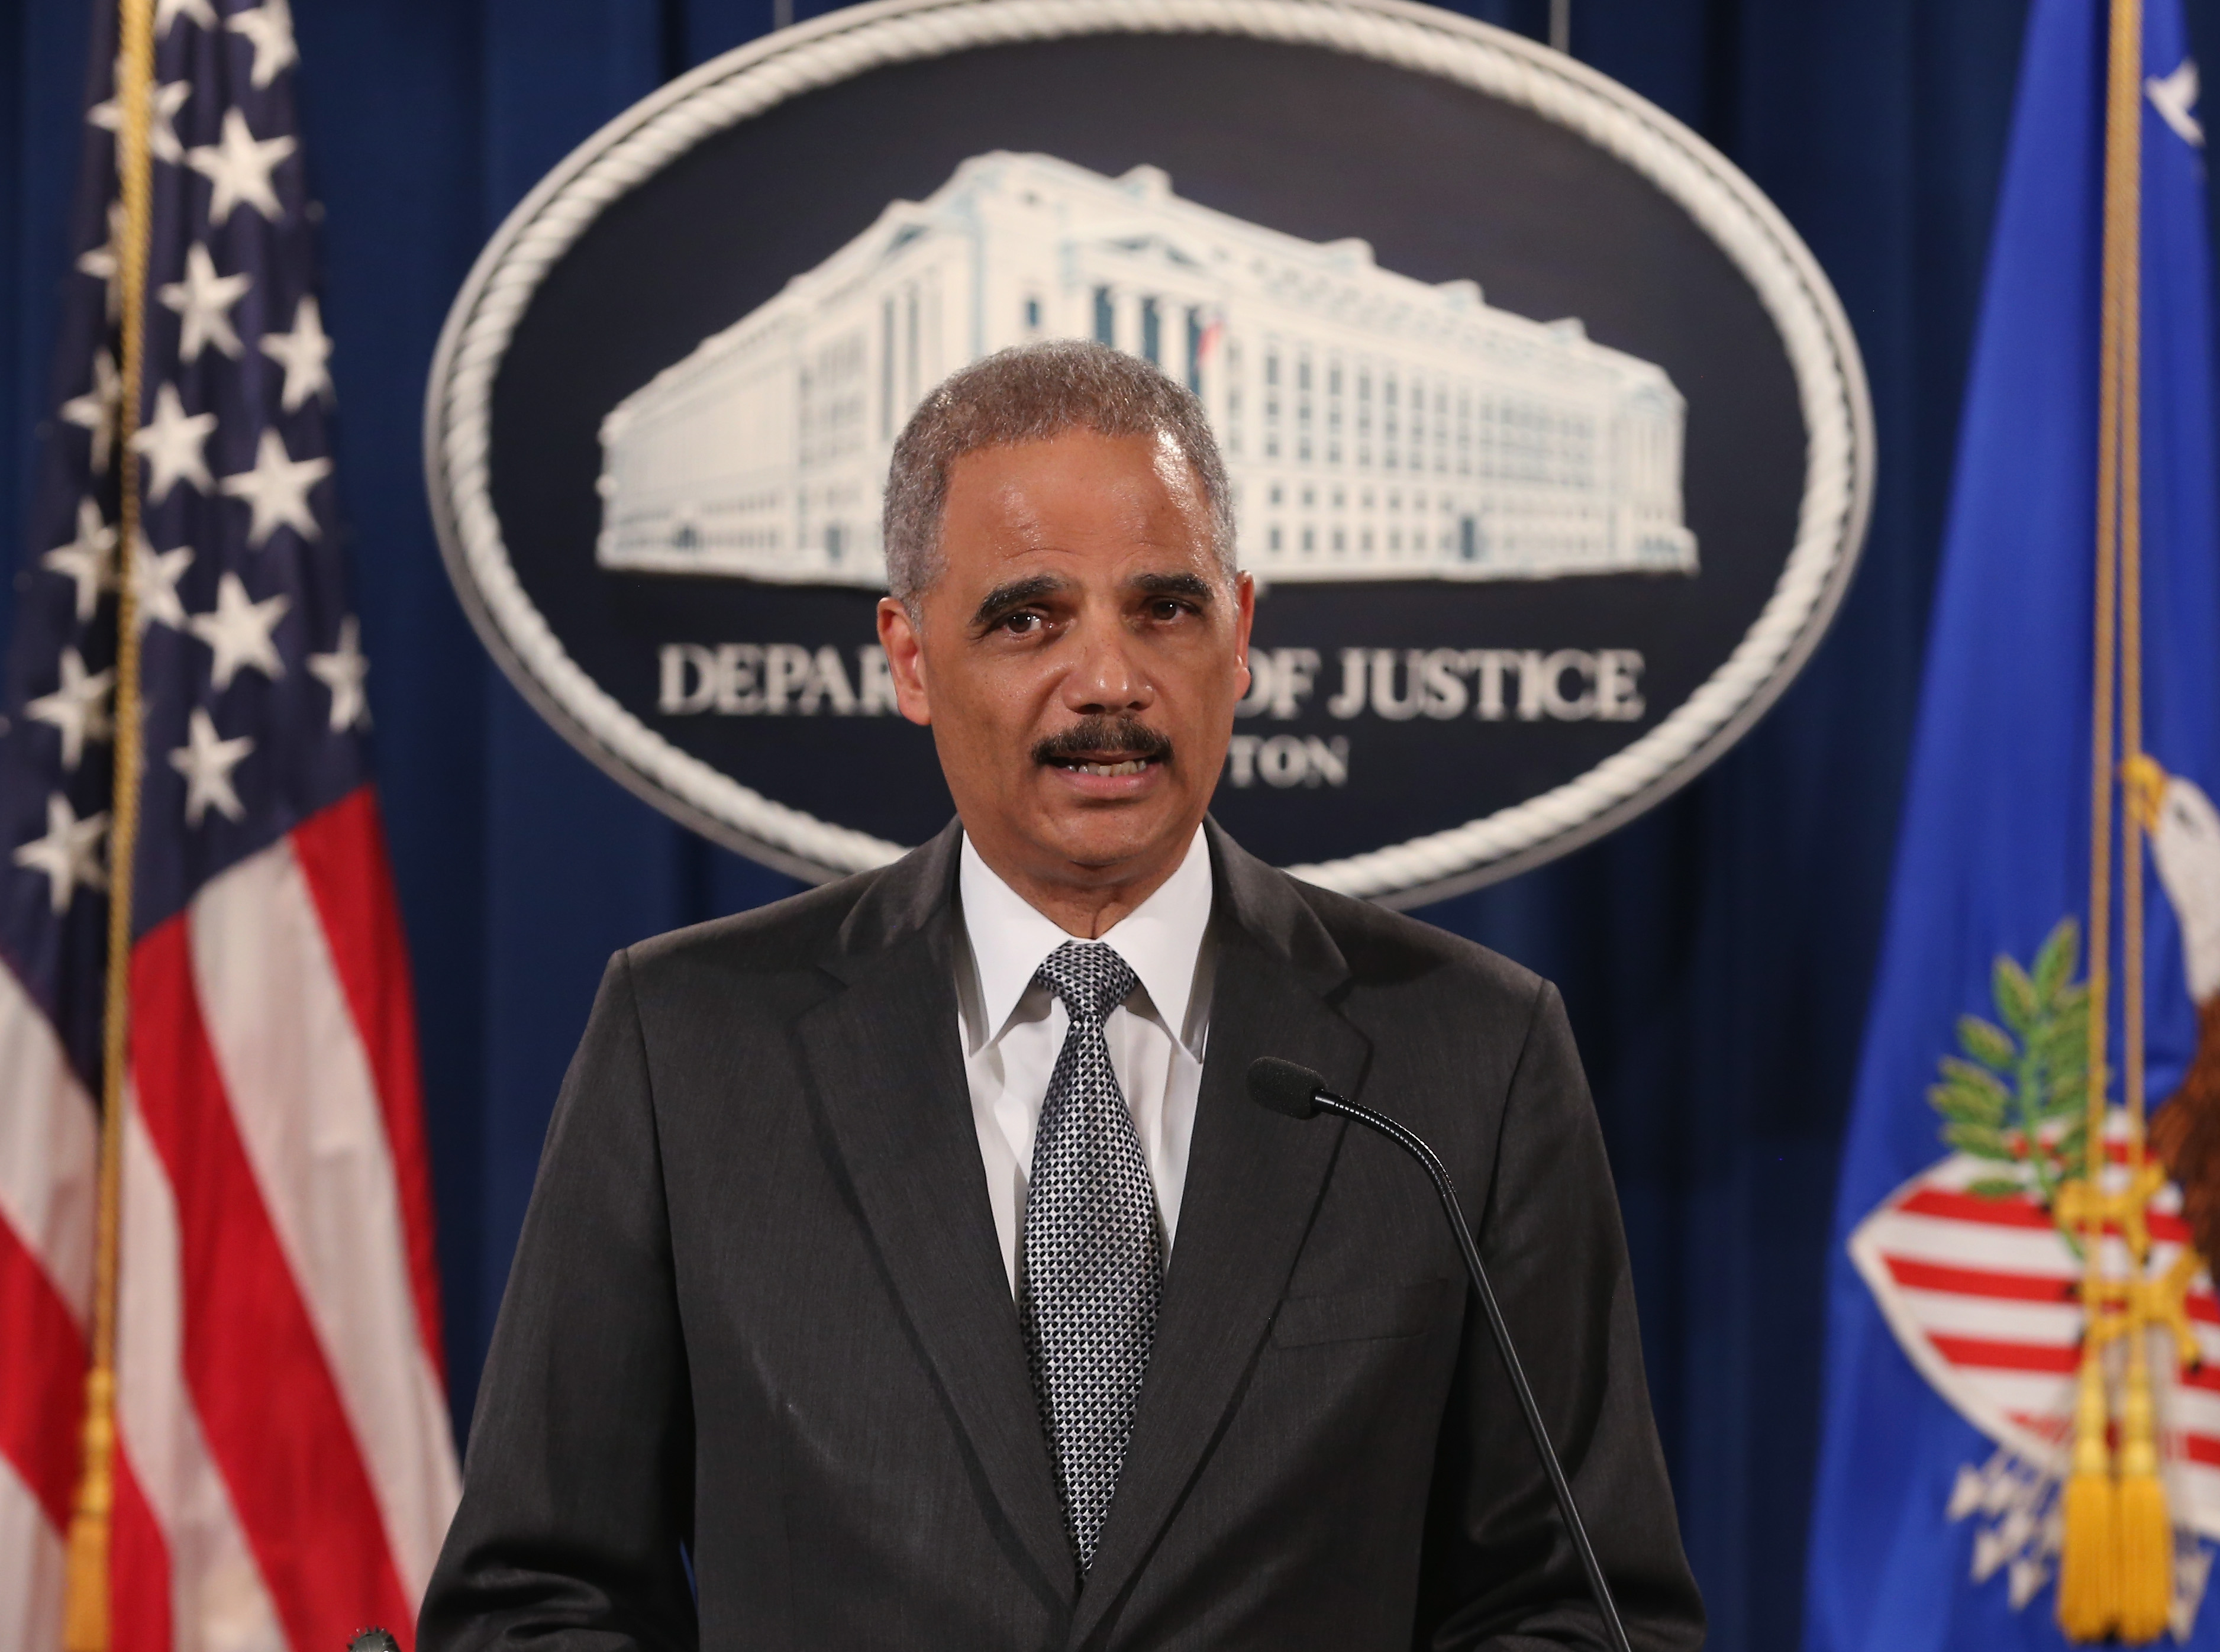 U.S. Attorney General Eric Holder speaks at the Justice Department on Dec. 3, 2014 in Washington D.C.